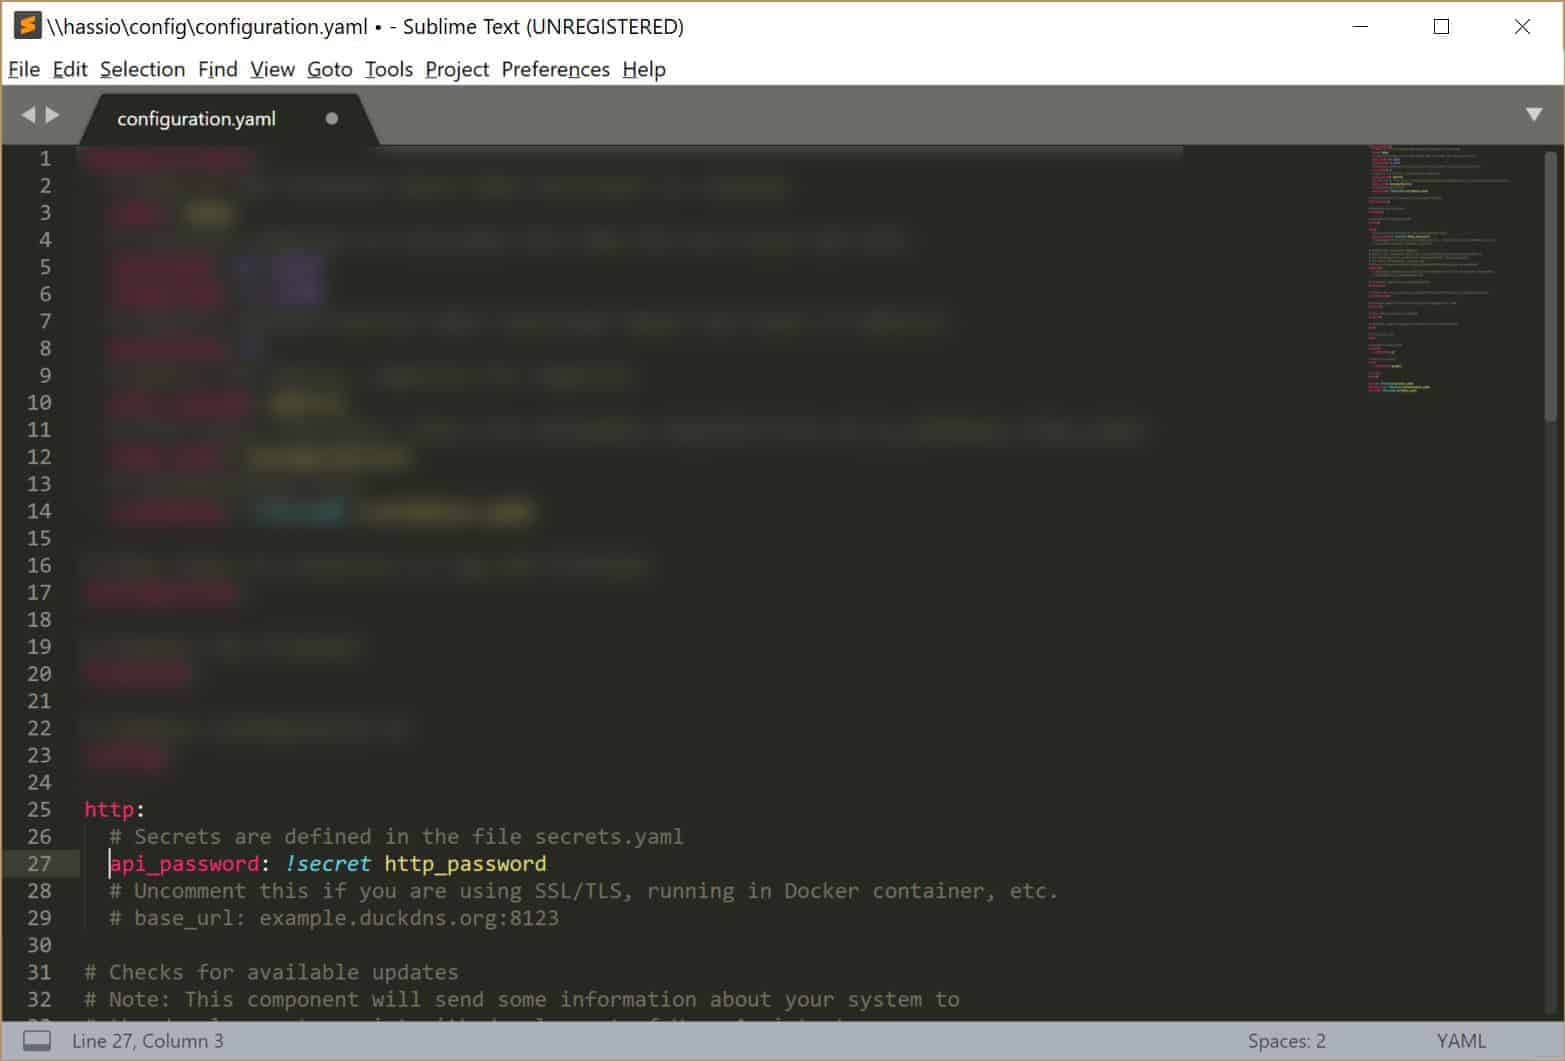 Setting the Home Assistant password in the configuration.yaml file